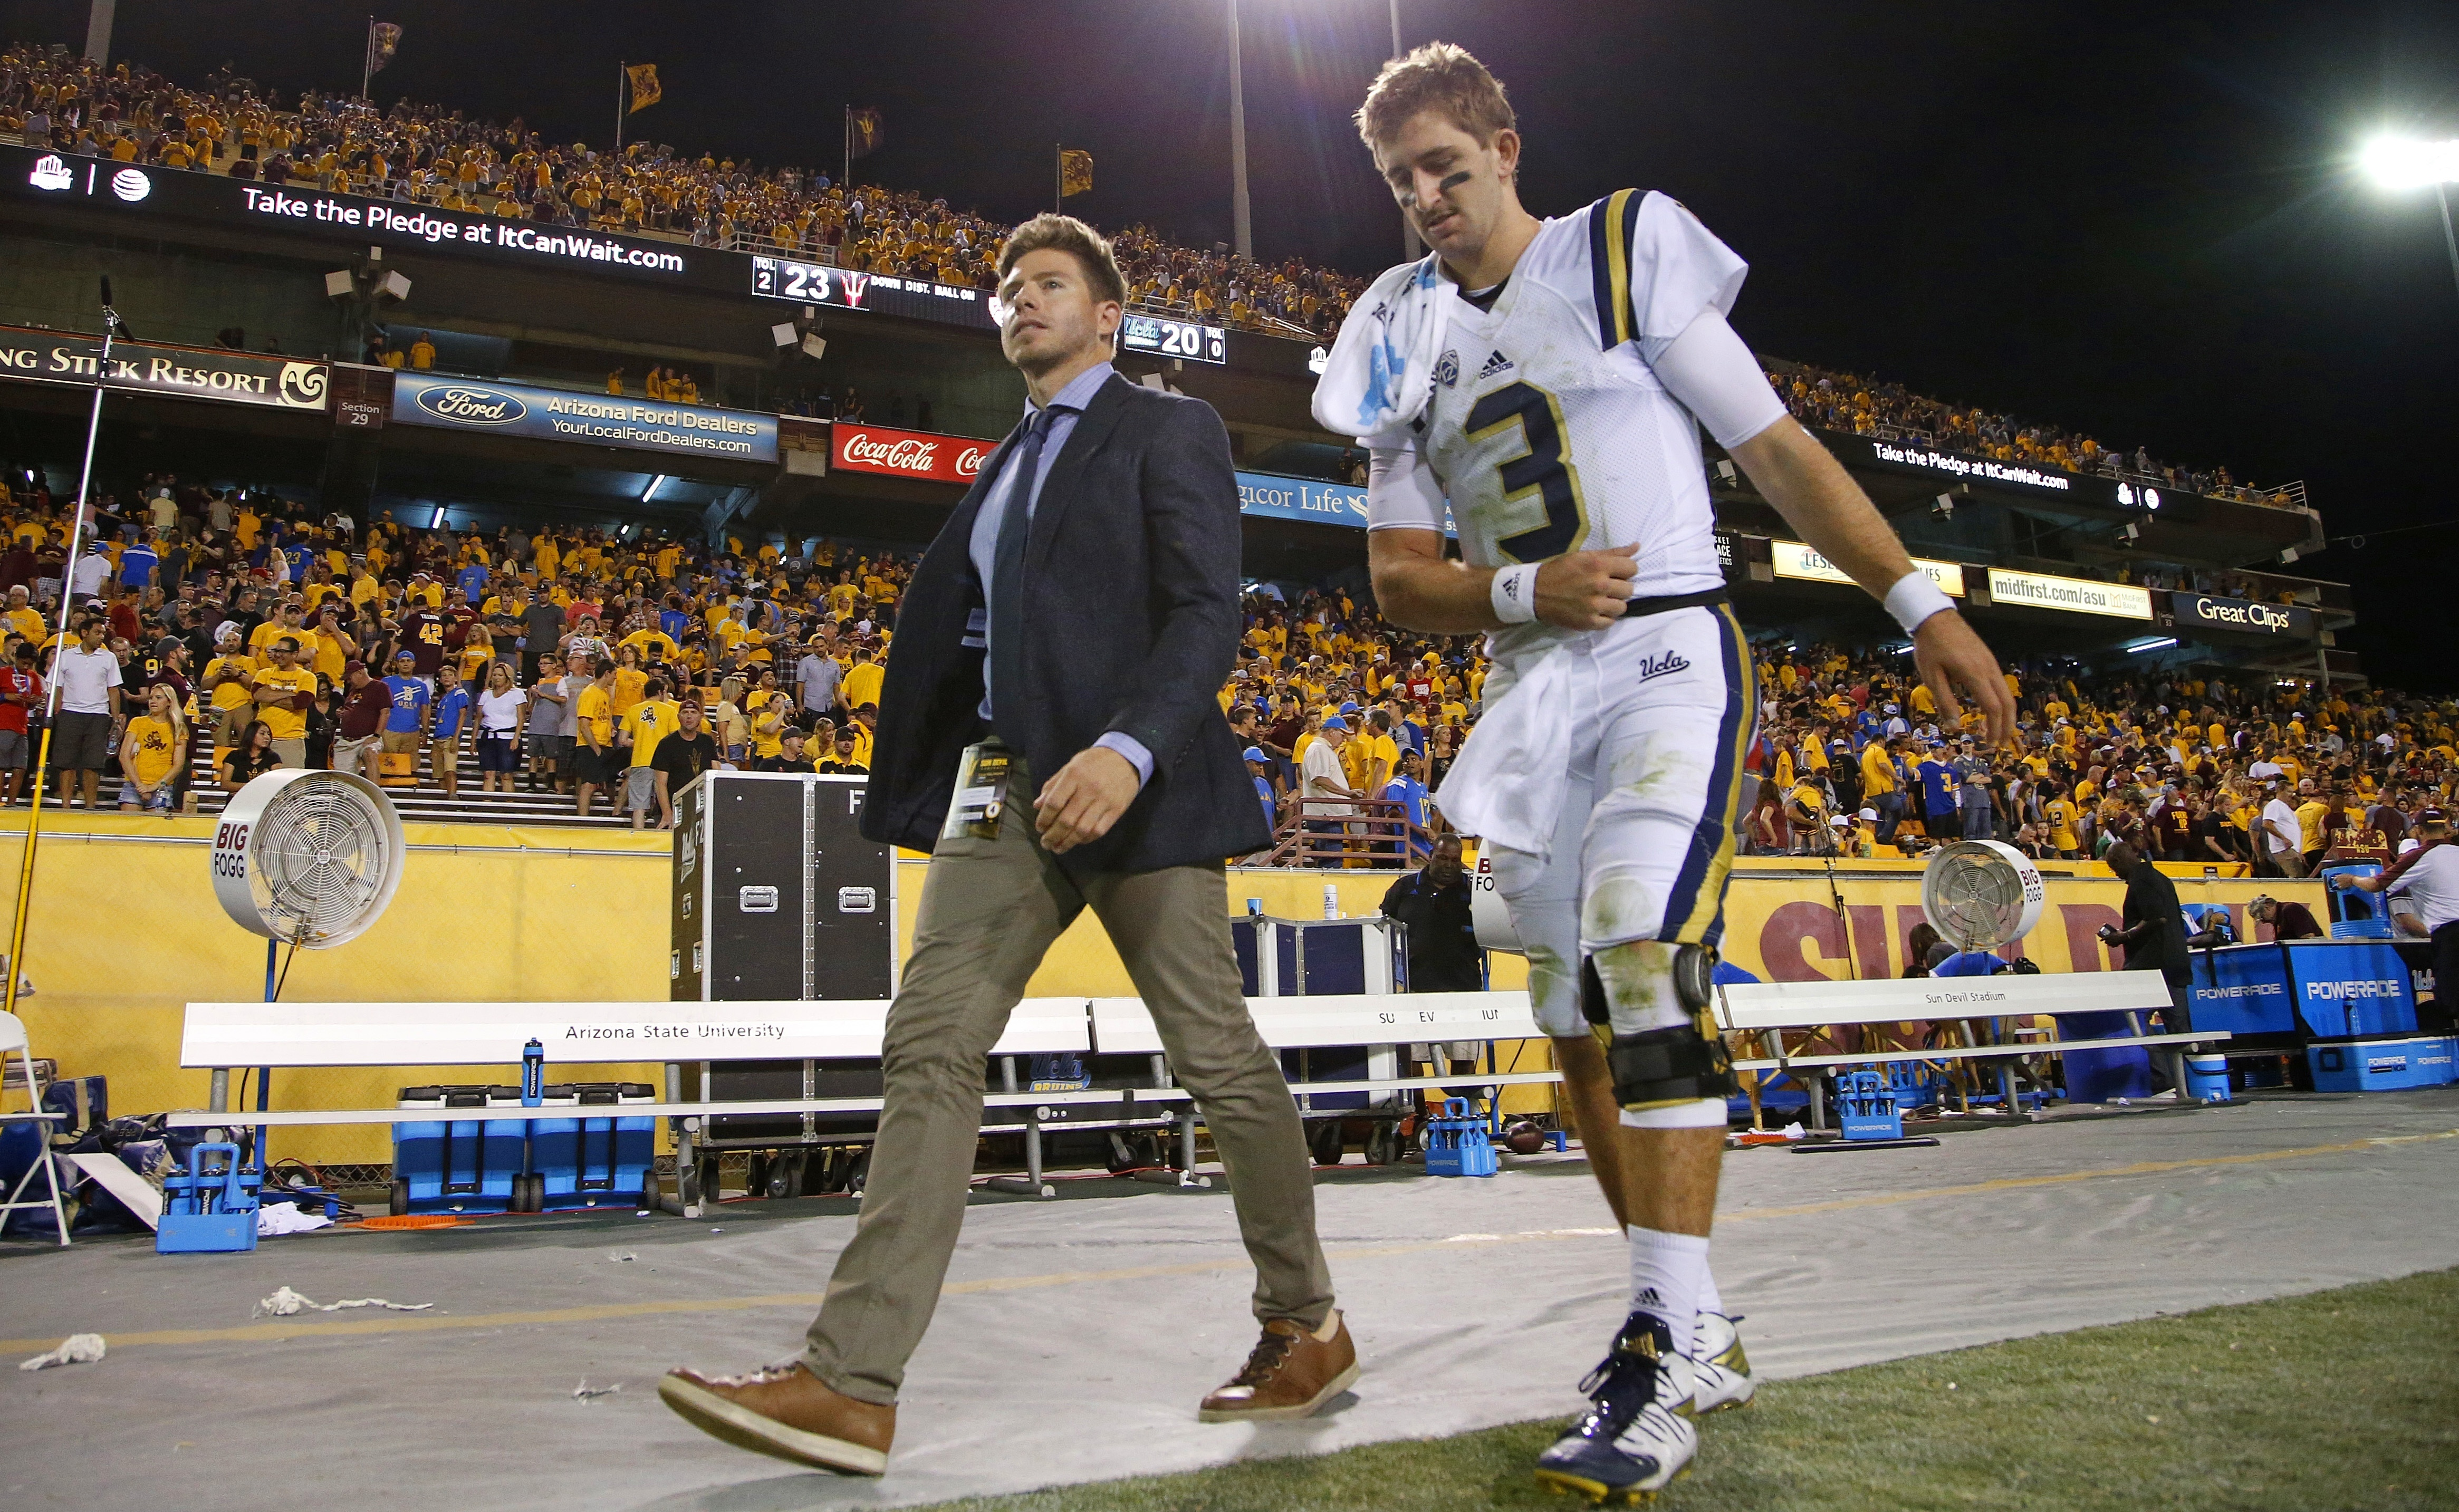 UCLA quarterback Josh Rosen (3) limps off the field after an NCAA college football game against Arizona State Saturday, Oct. 8, 2016, in Tempe, Ariz.  Arizona State defeated UCLA 23-20. (AP Photo/Ross D. Franklin)